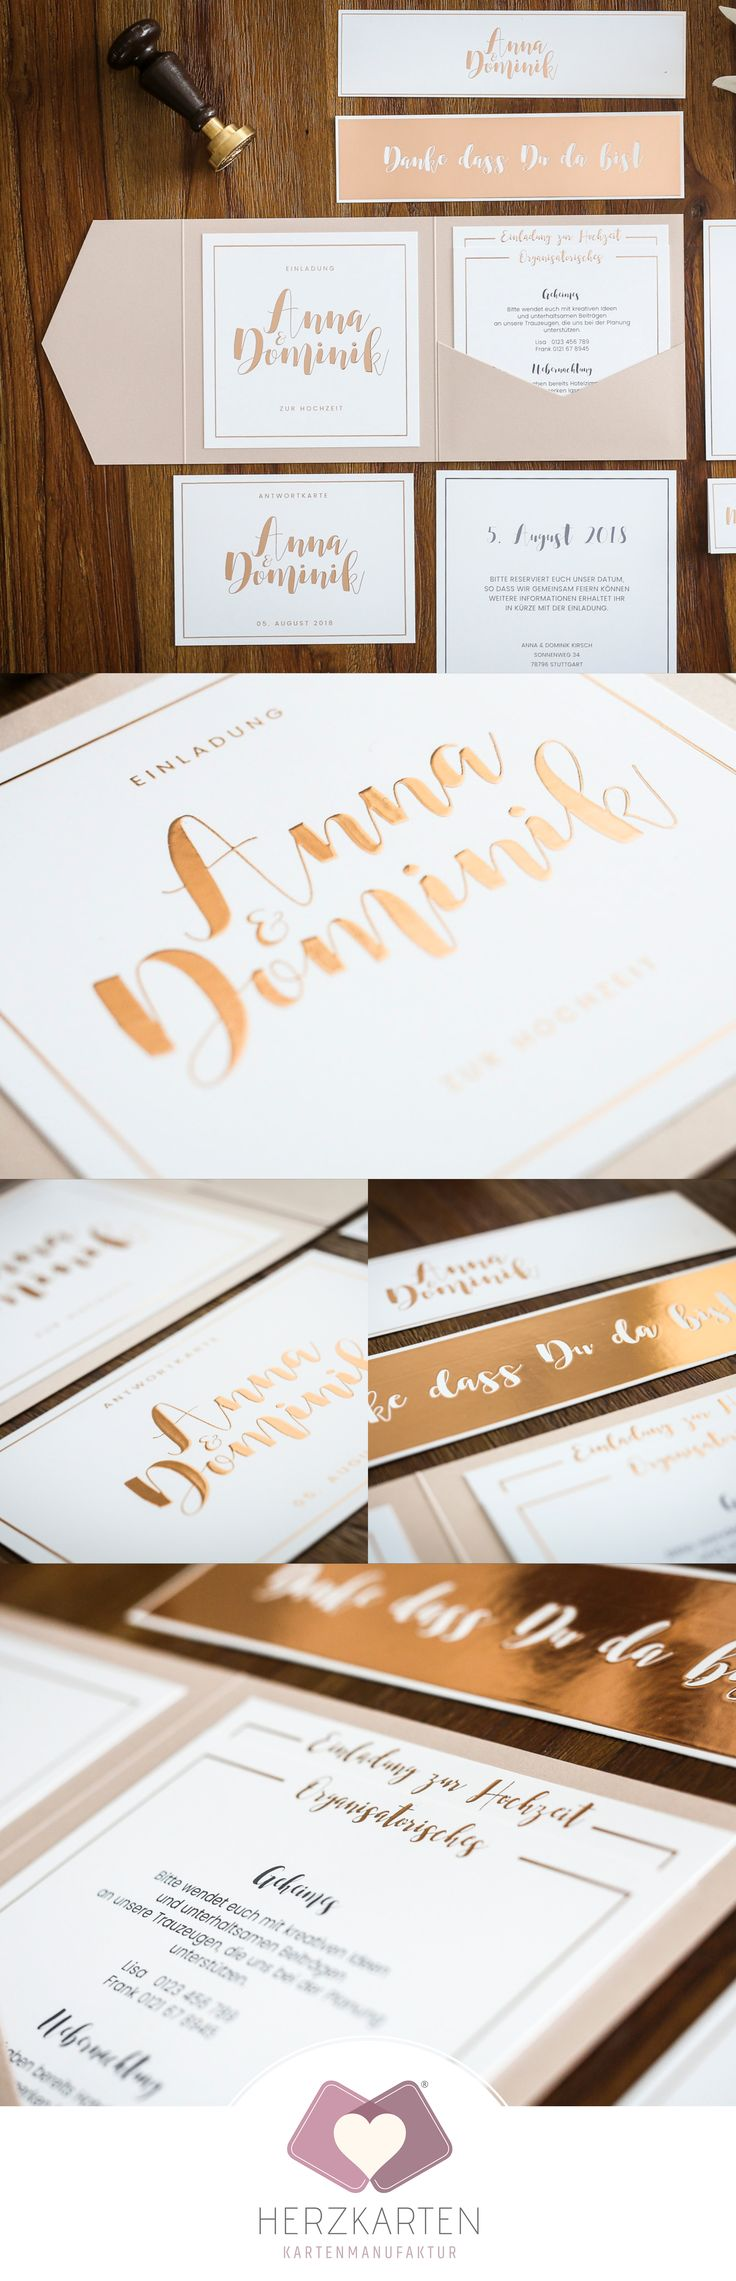 Handlettering & calligraphy stationery with hot foil stamping in gold, silver and rose gold